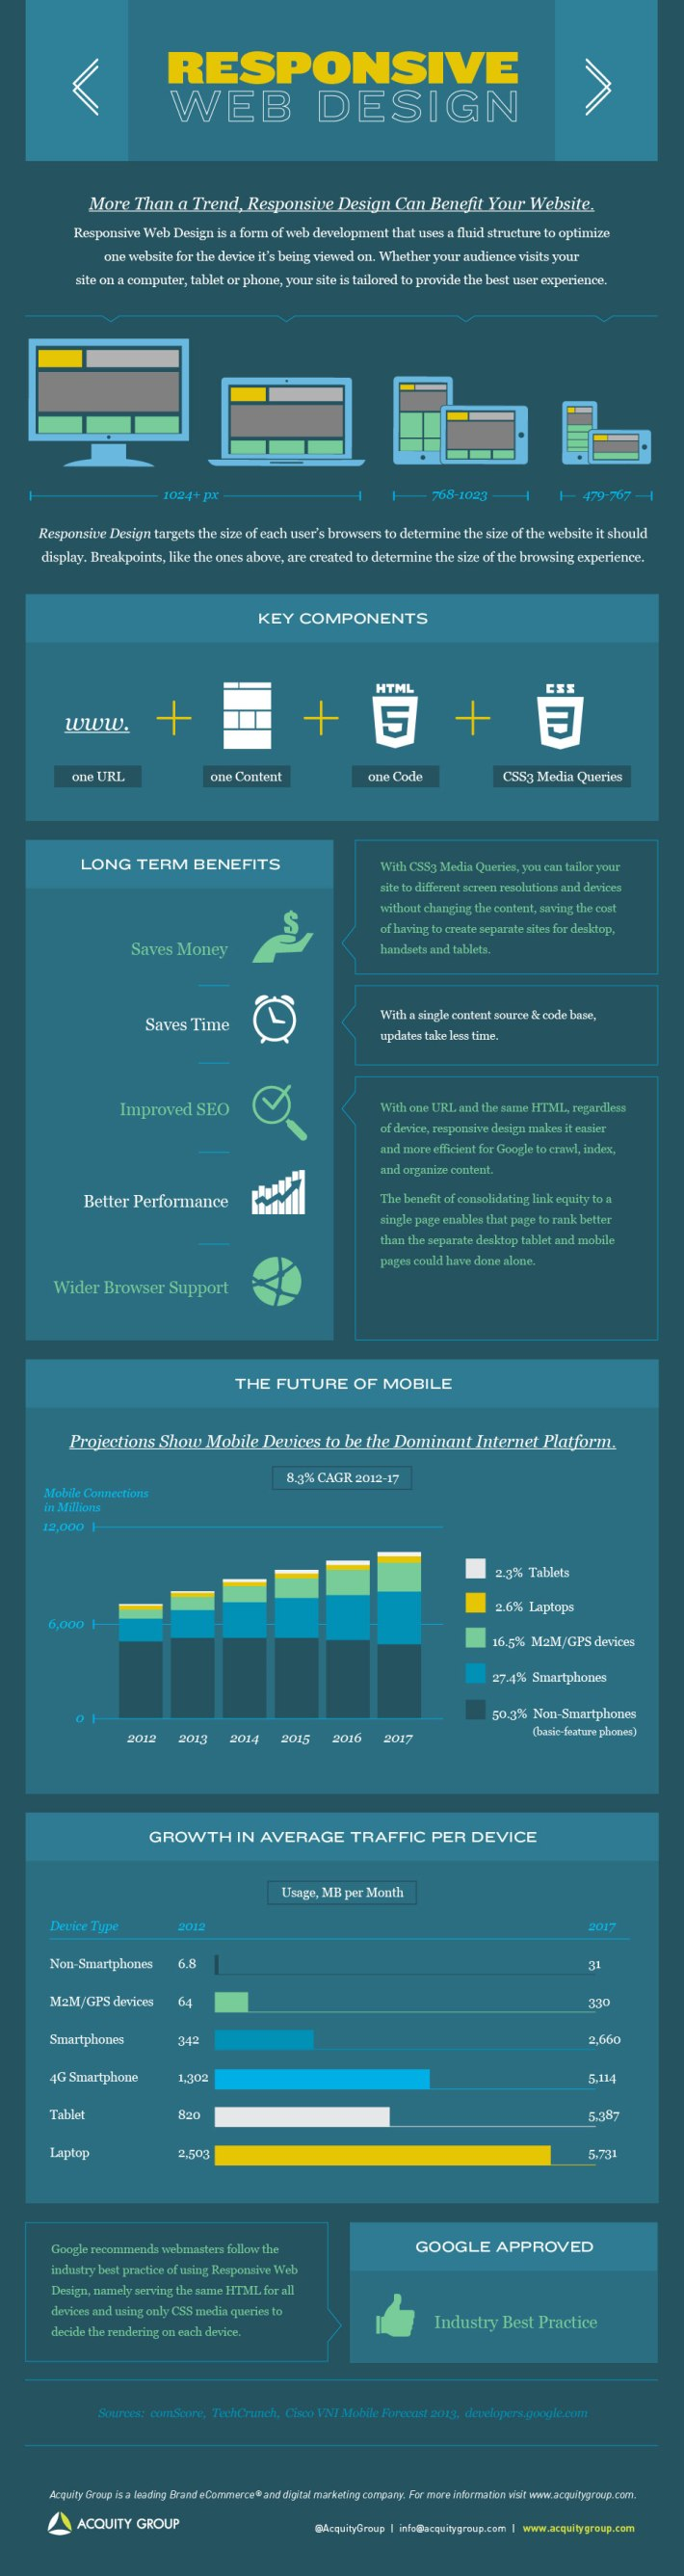 ResponsiveDesign-infographic-05